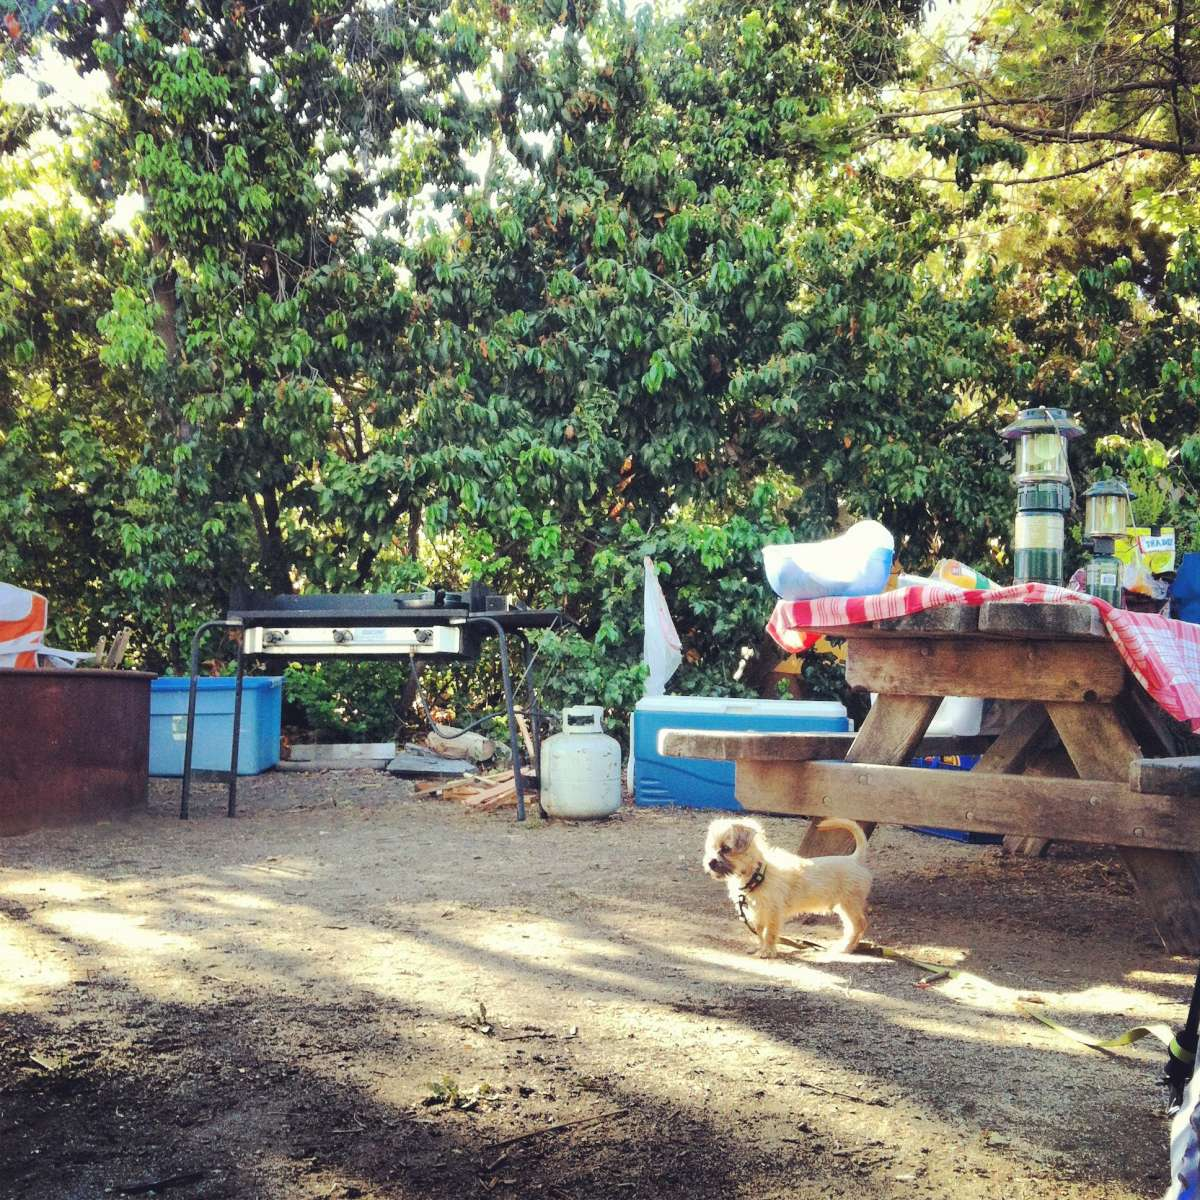 San Mateo Campground, San Onofre, CA: 7 Hipcamper Reviews ... on doheny sb campground map, doheny state beach camping map, doheny campsite map, mueller state park campground map,